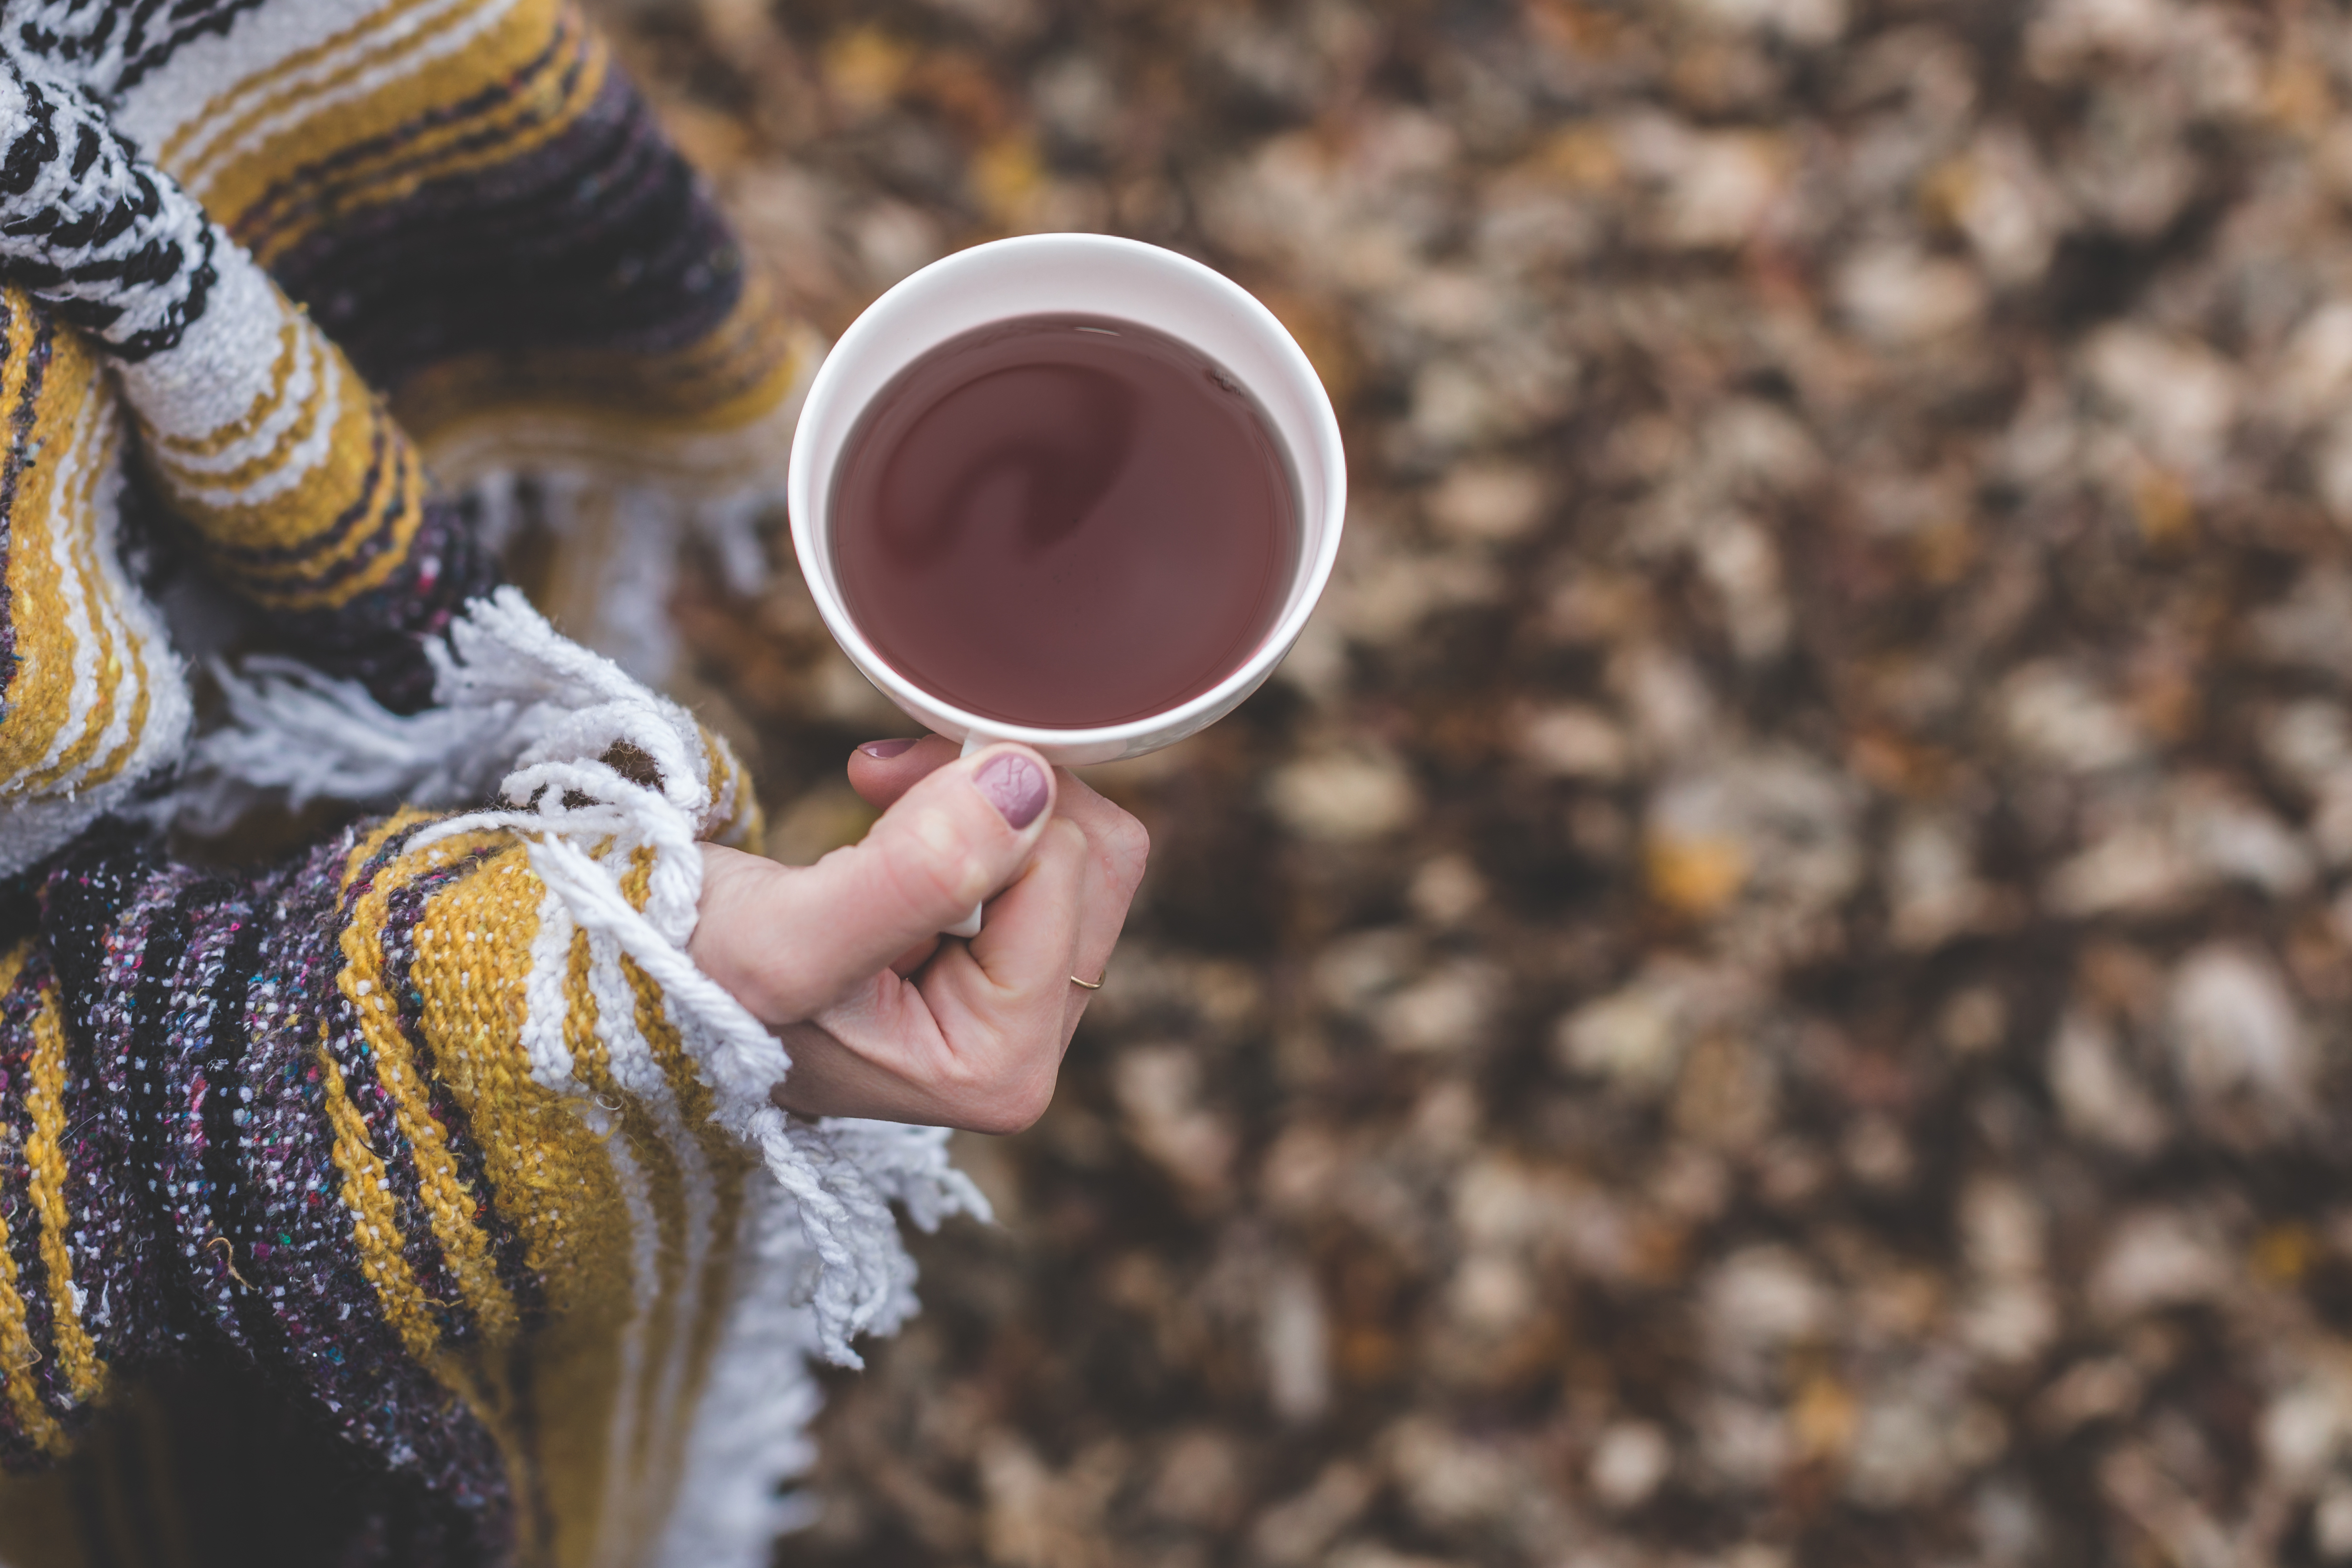 boost your immune system - homemade tea - immunitea - immune system tea - tea for your immune system - foods for your immune system - boost immune system flu - natural remedies flu - natural remedies cold